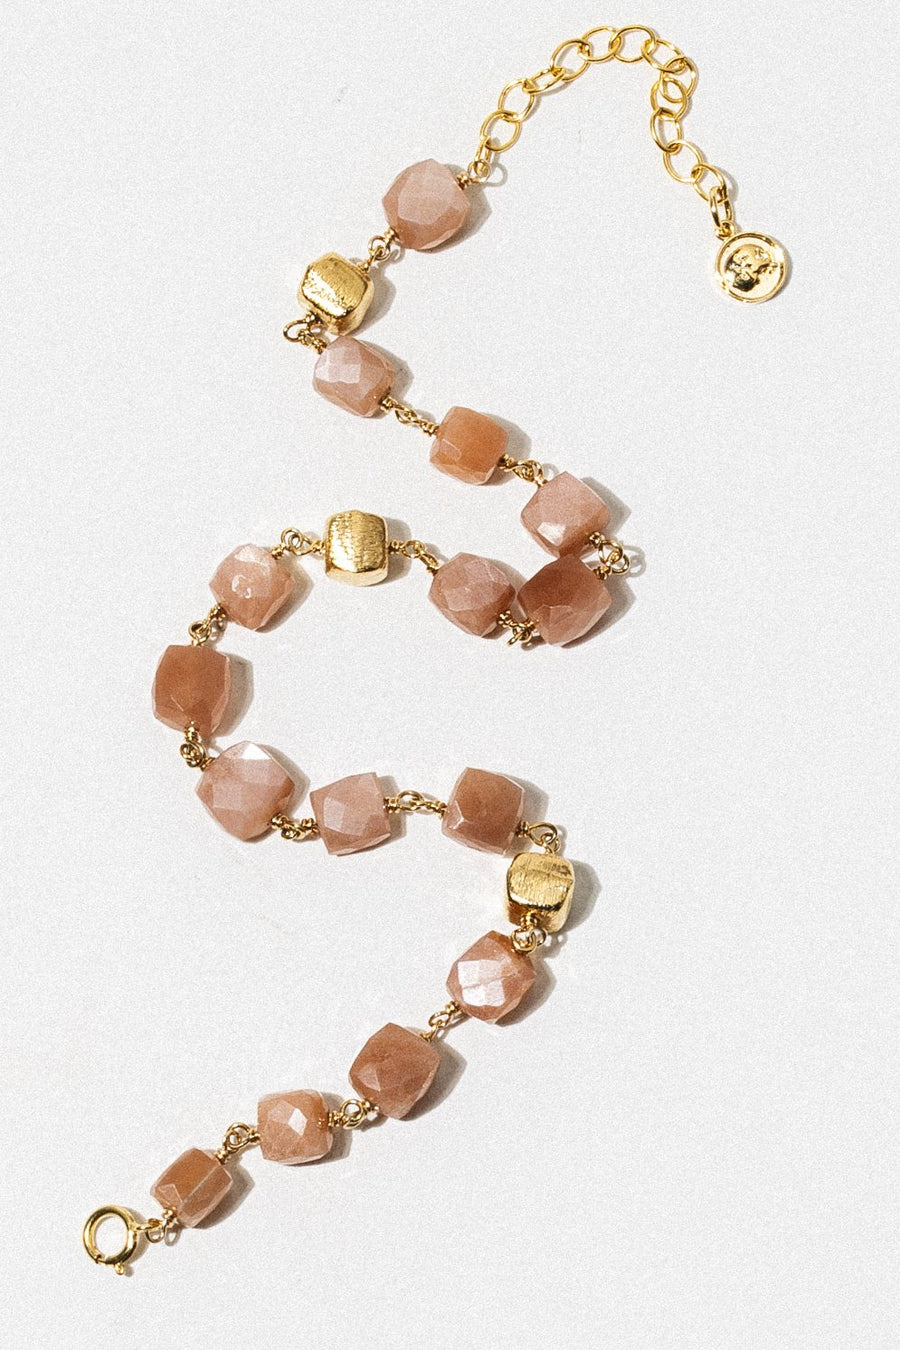 Goddess Jewelry Gold / Peach Moonstone aCW007